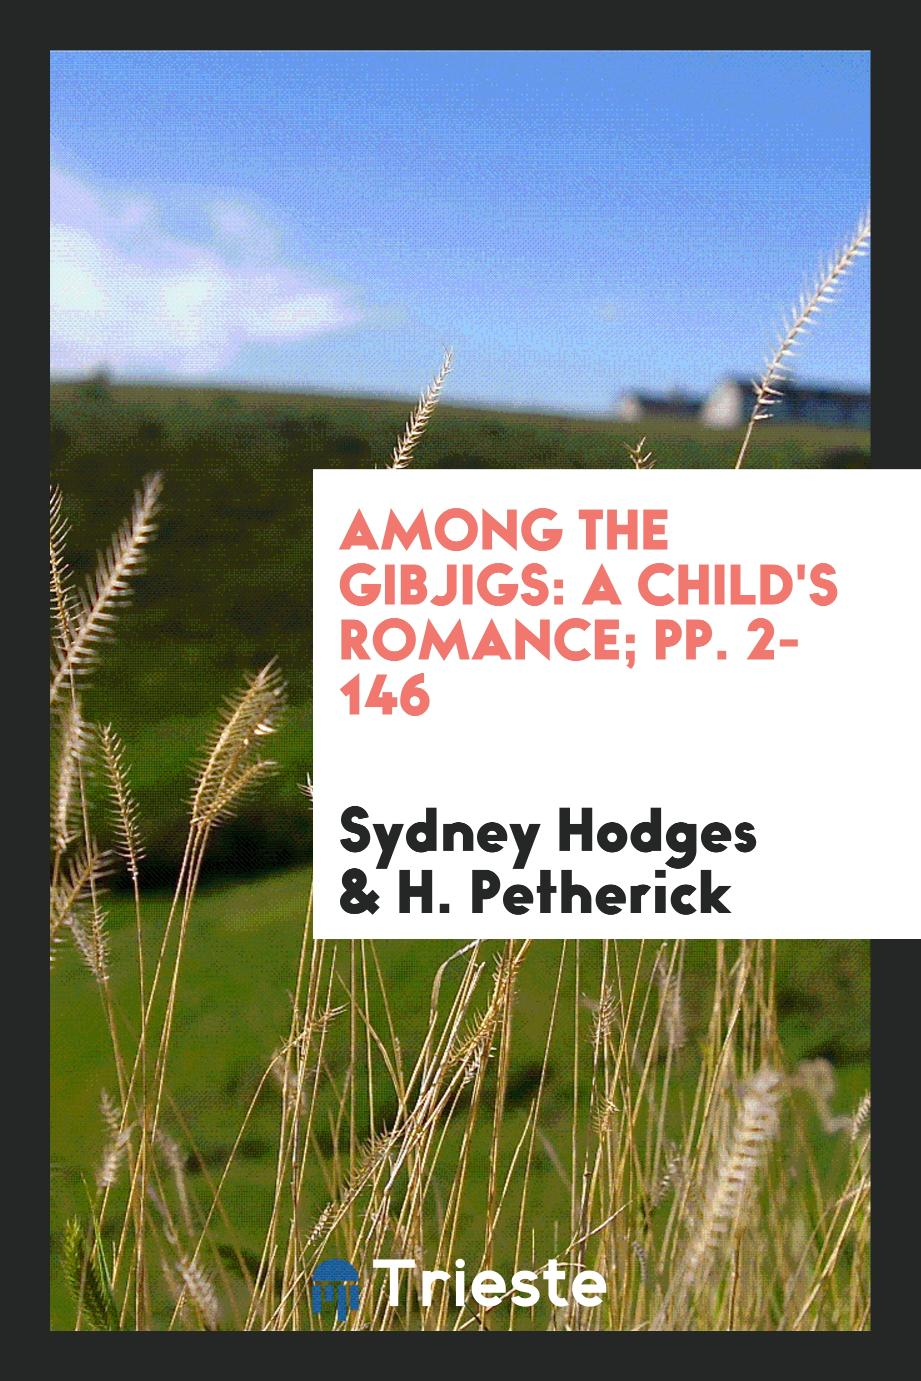 Among the Gibjigs: A Child's Romance; pp. 2-146